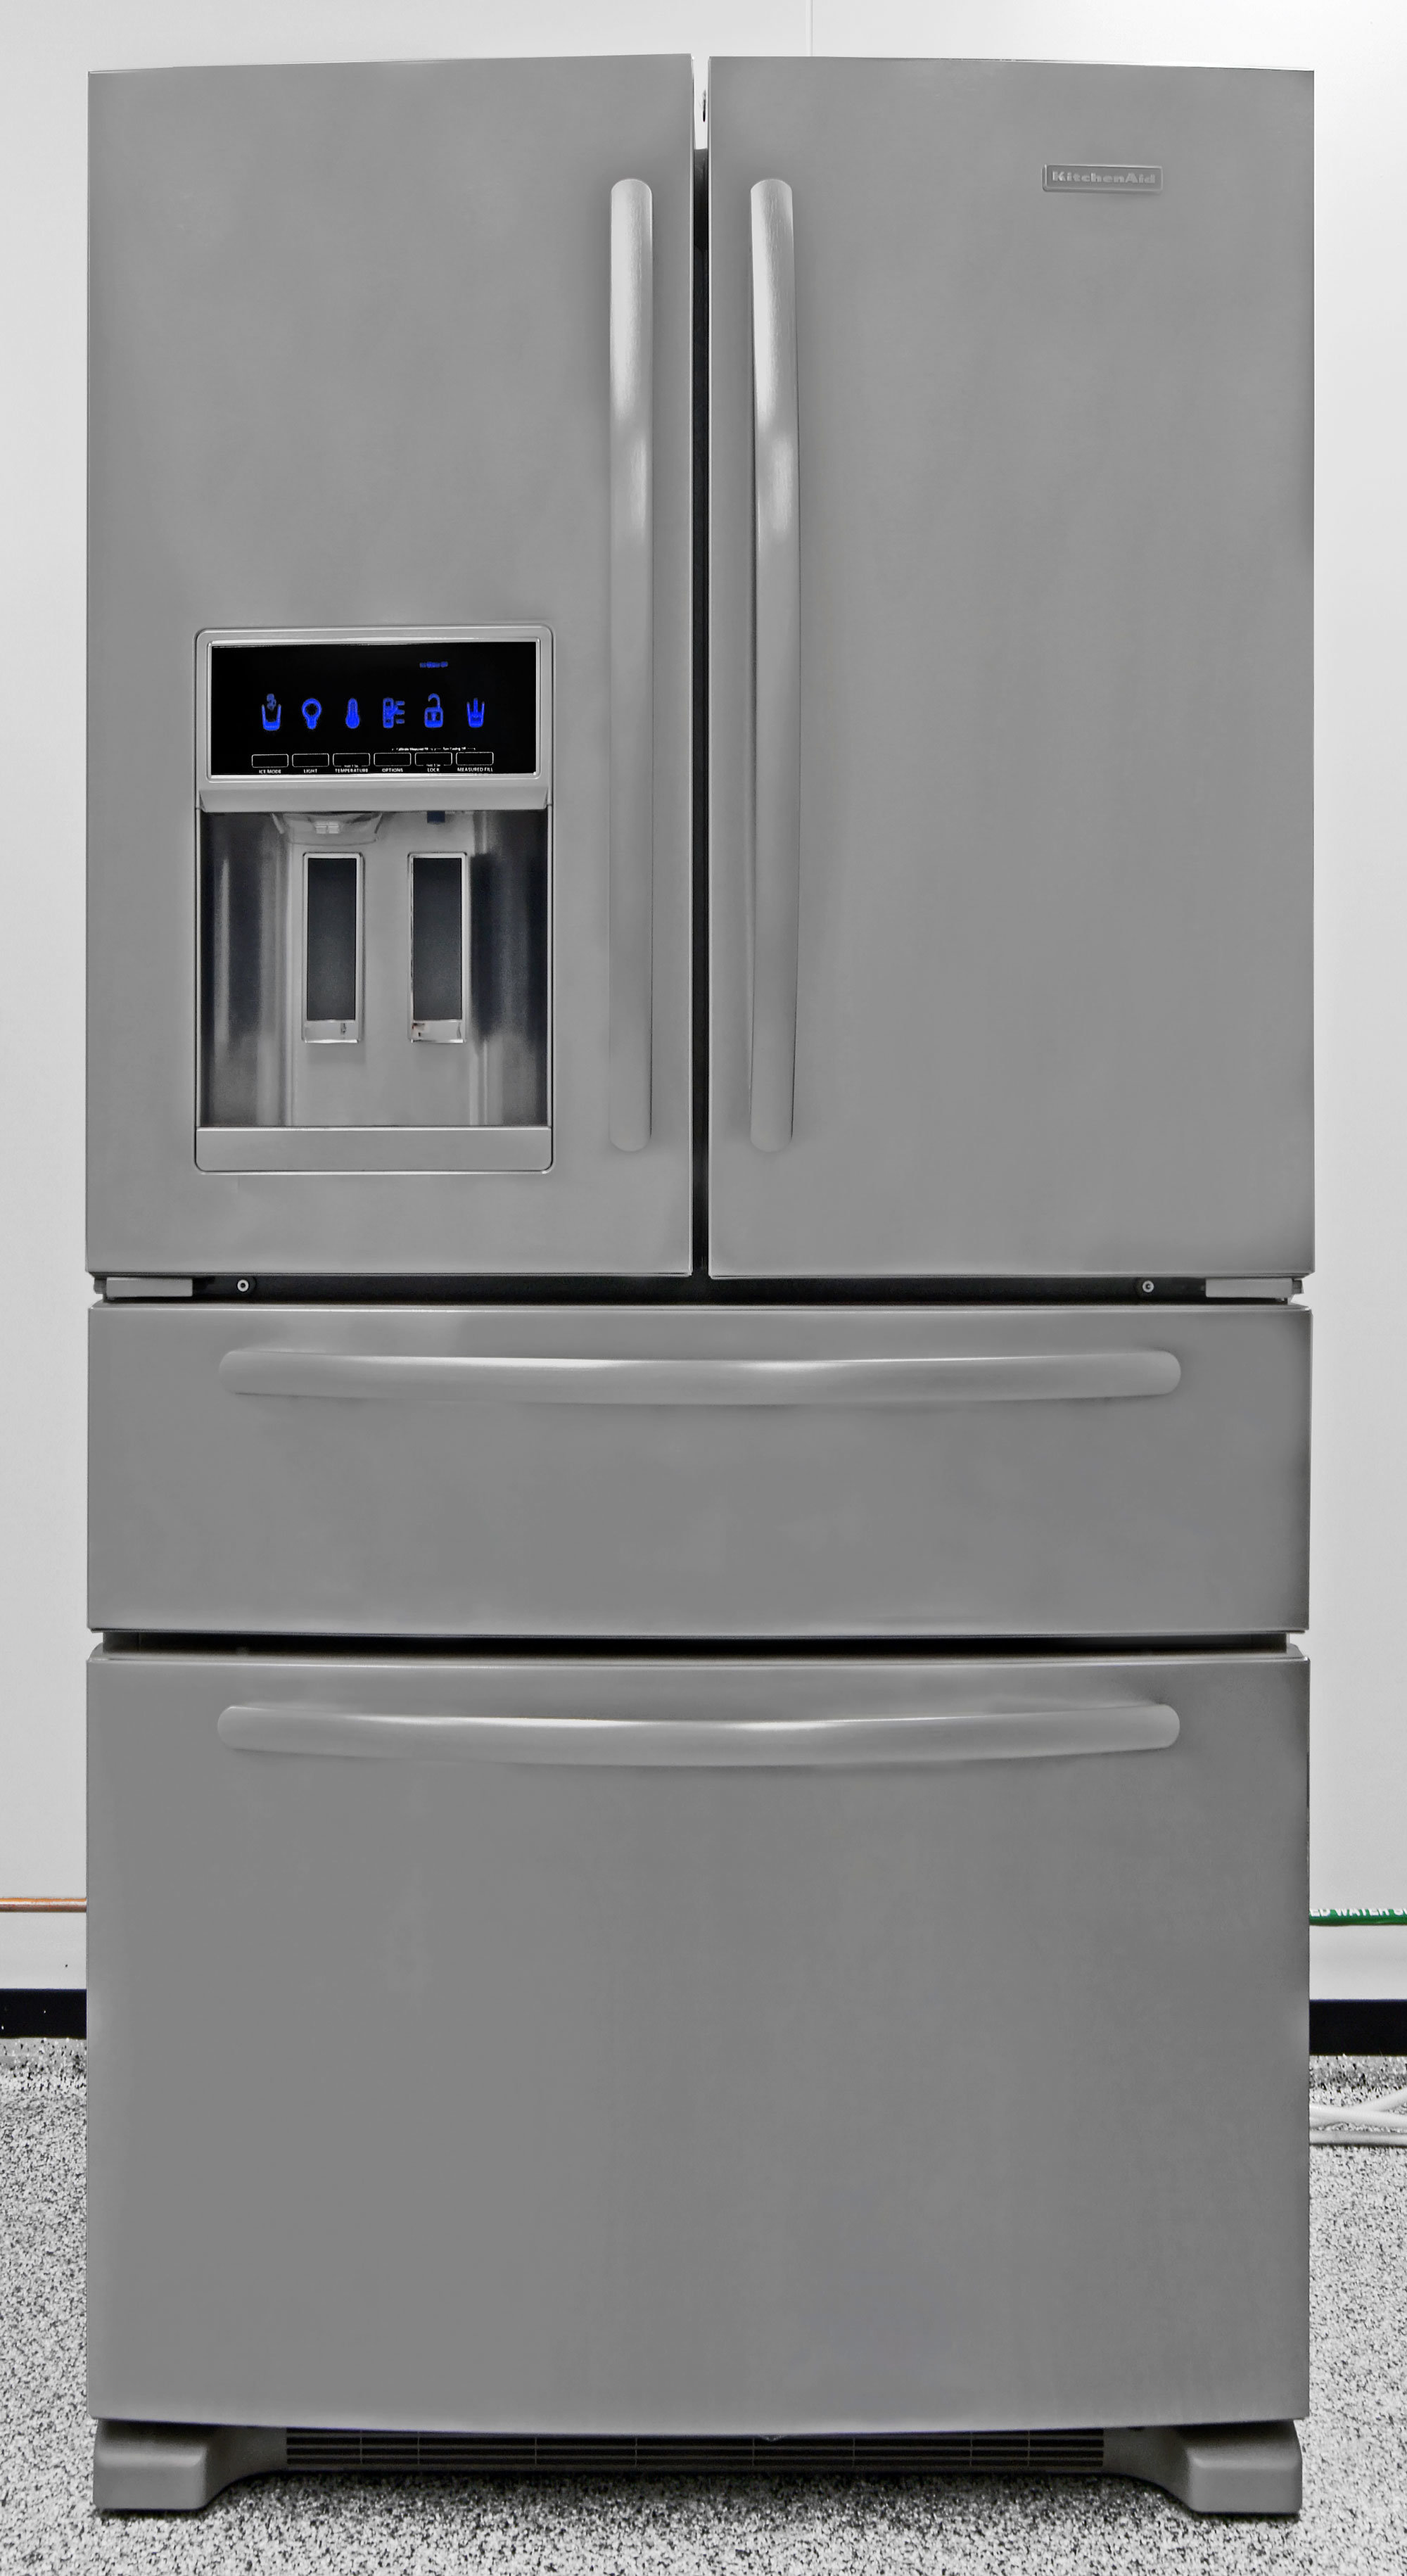 The KitchenAid KFXS25RYMS Is One Of The More Affordable Four Door Fridges  On The Market